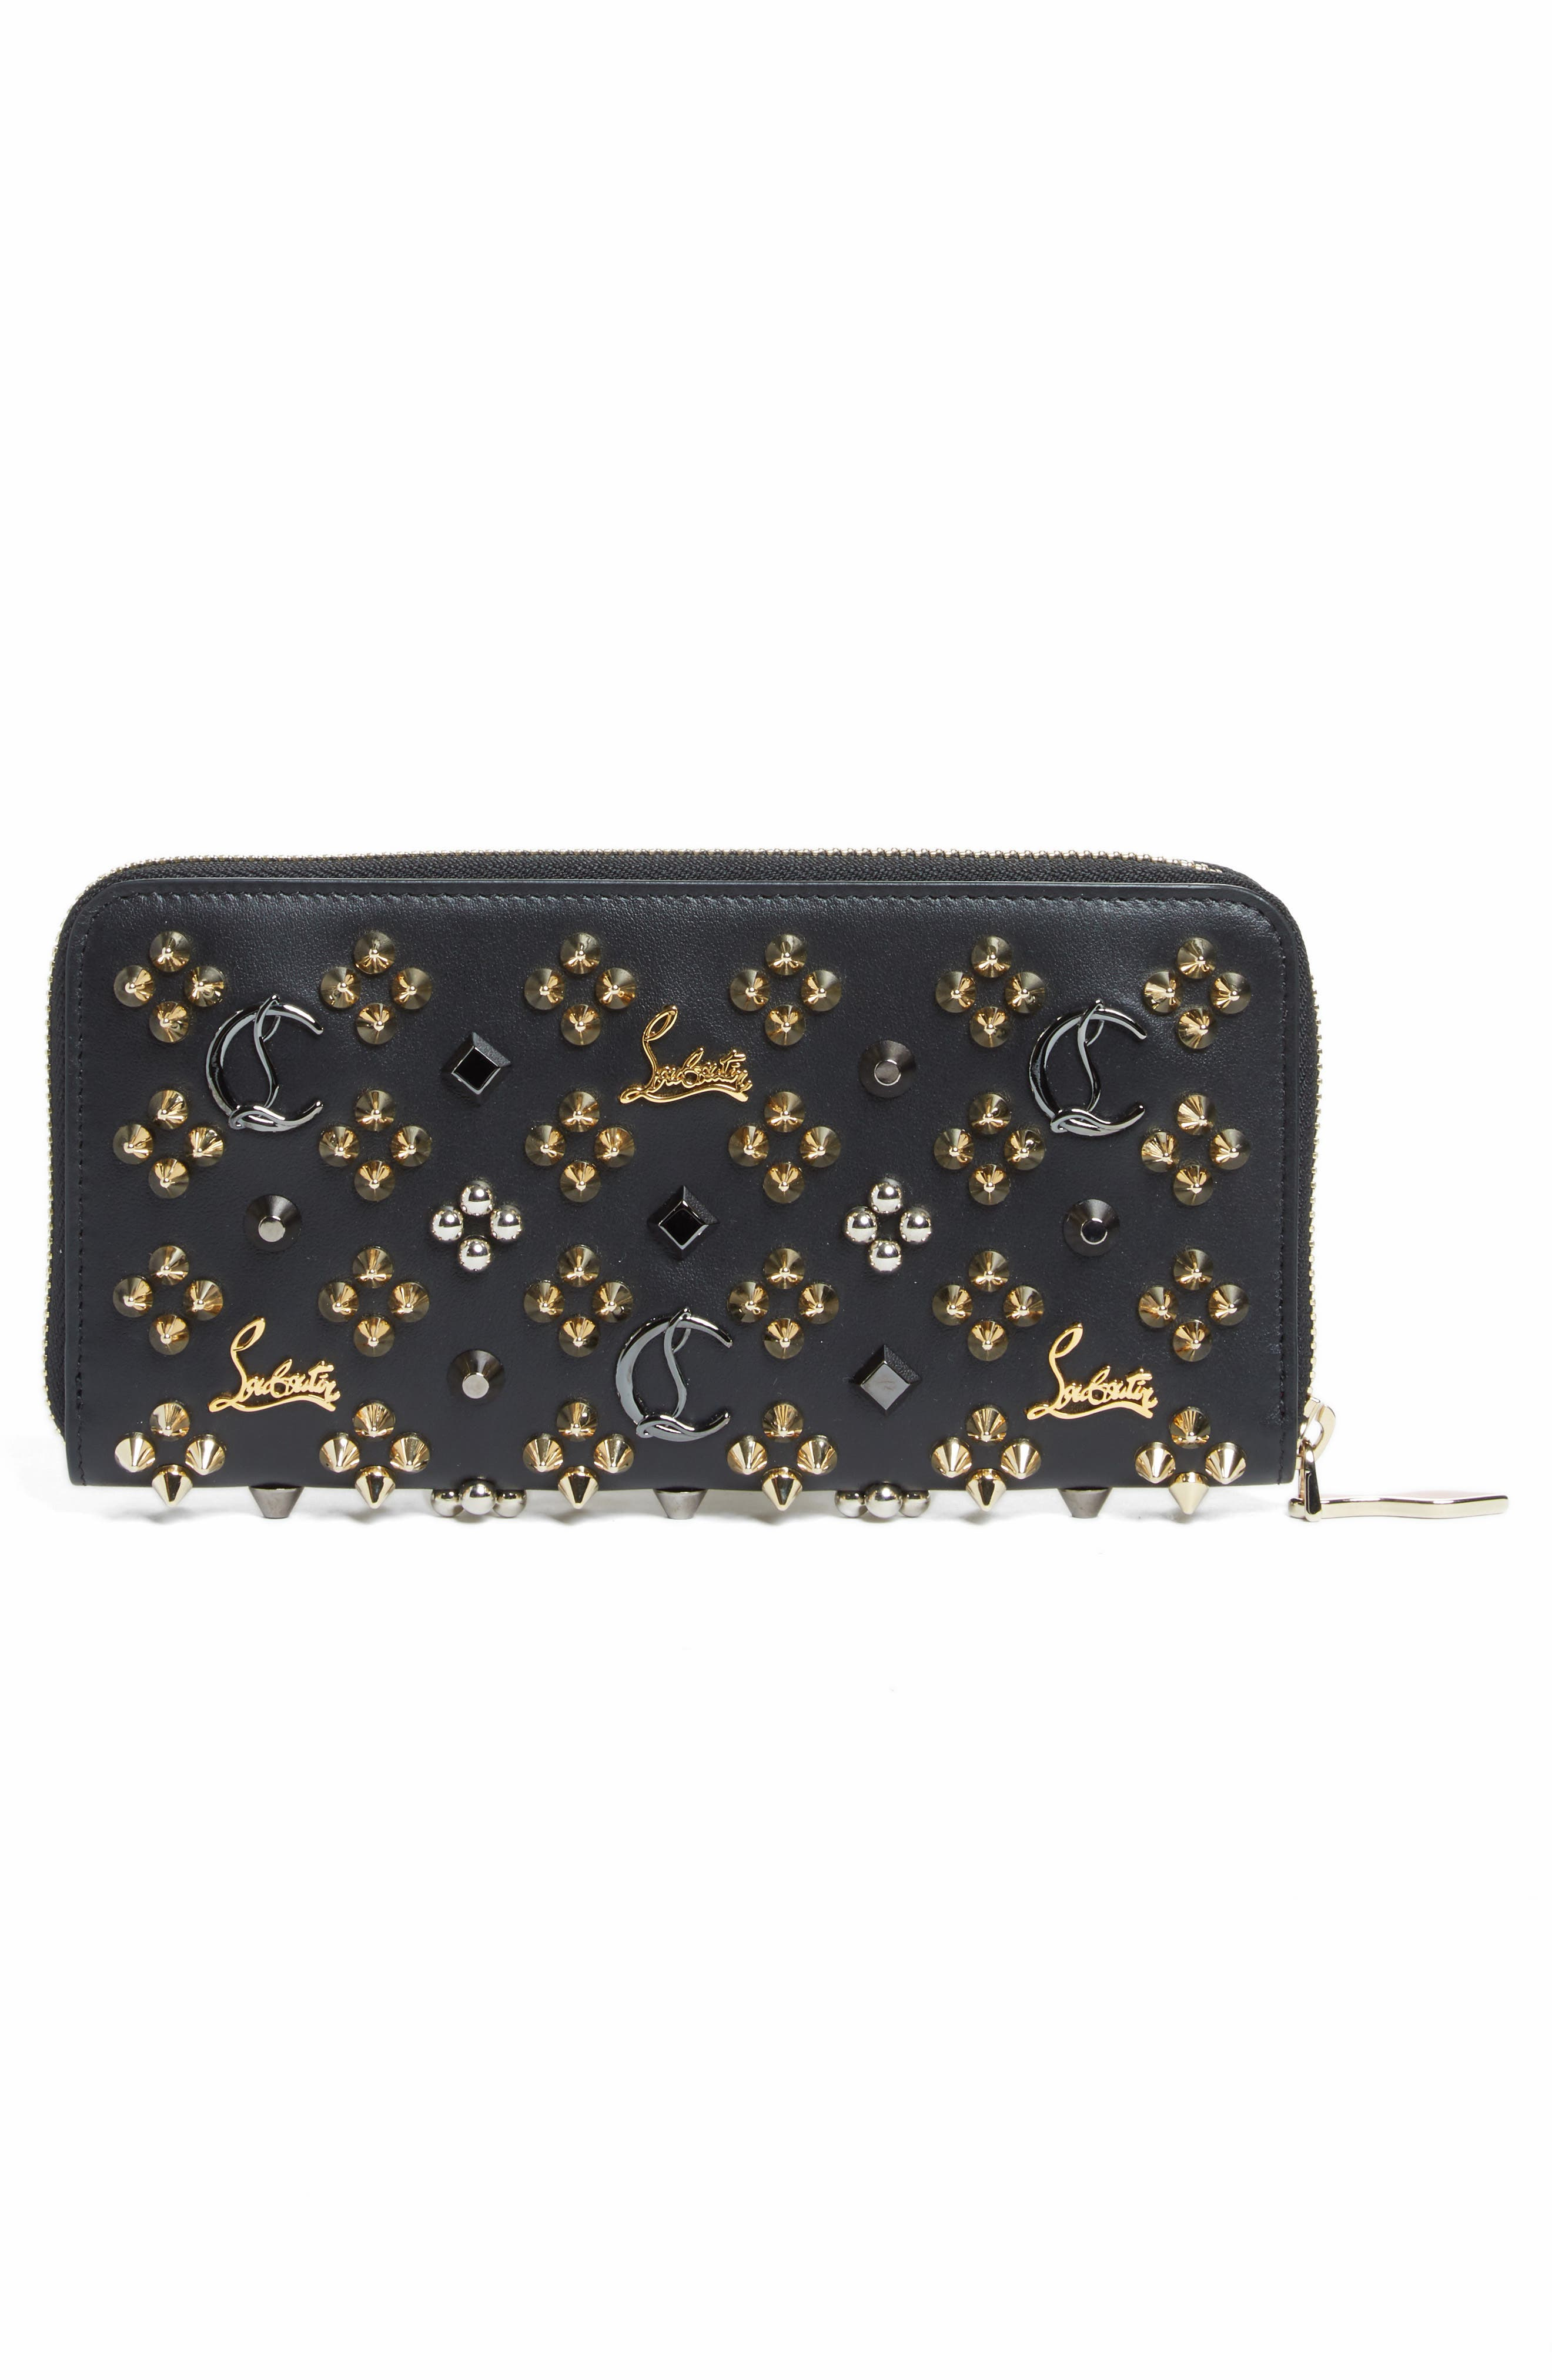 Alternate Image 3  - Christian Louboutin Panettone Spiked Calfskin Wallet